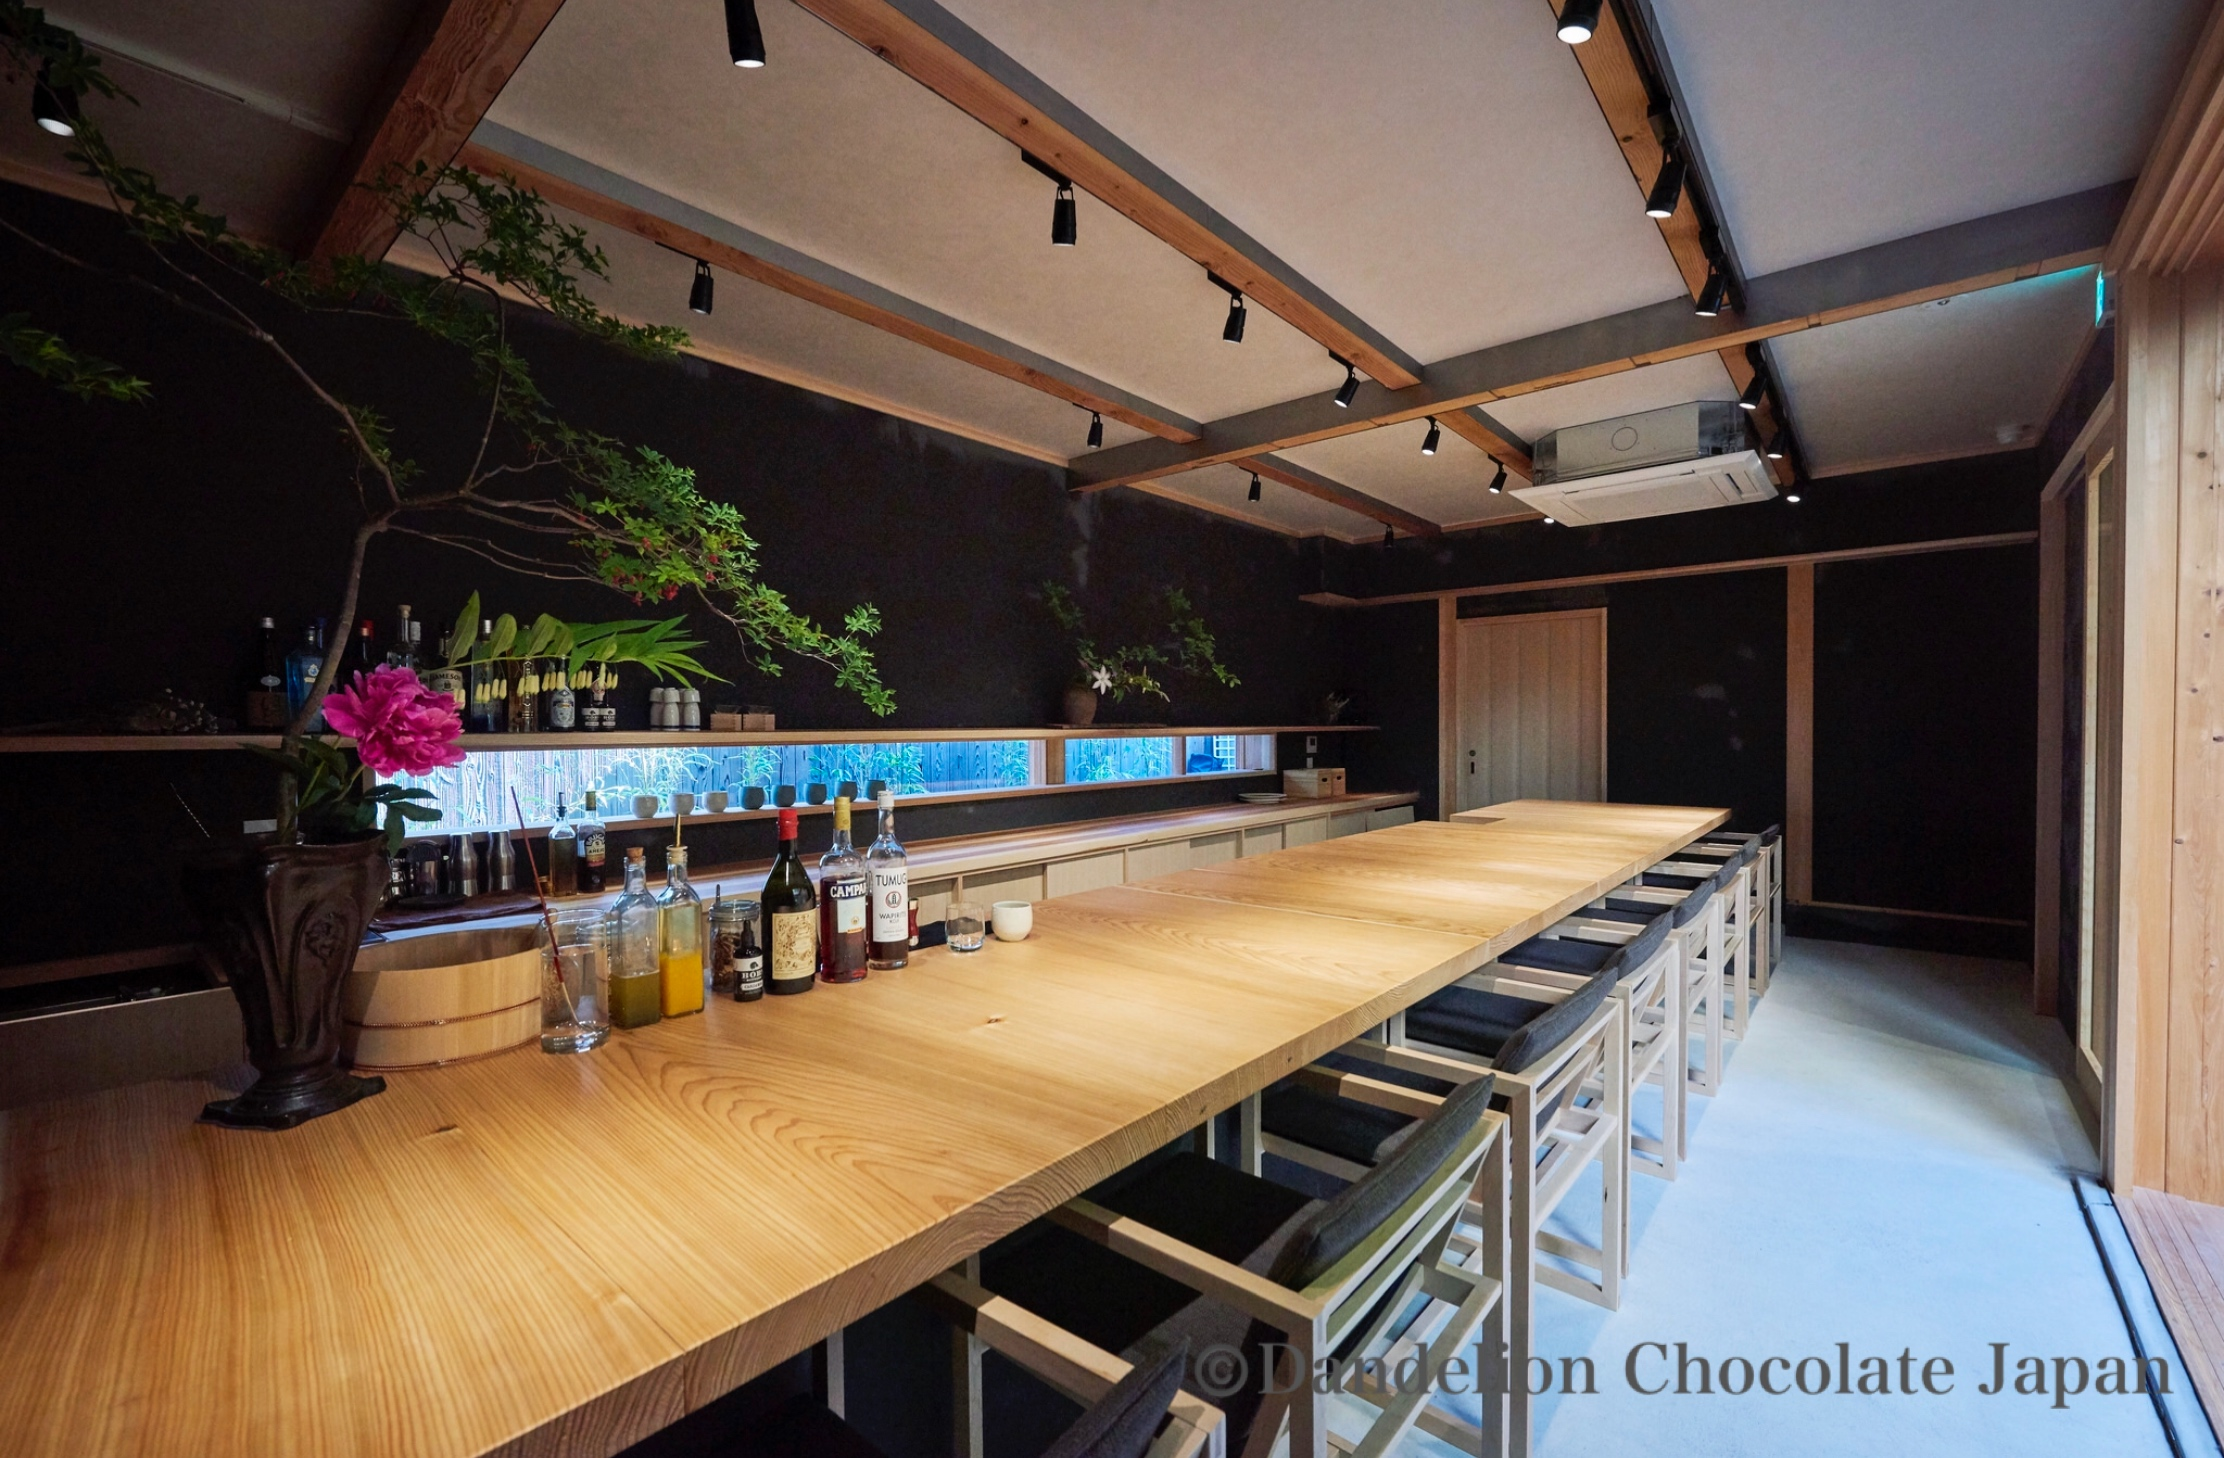 New attractions of Cacao